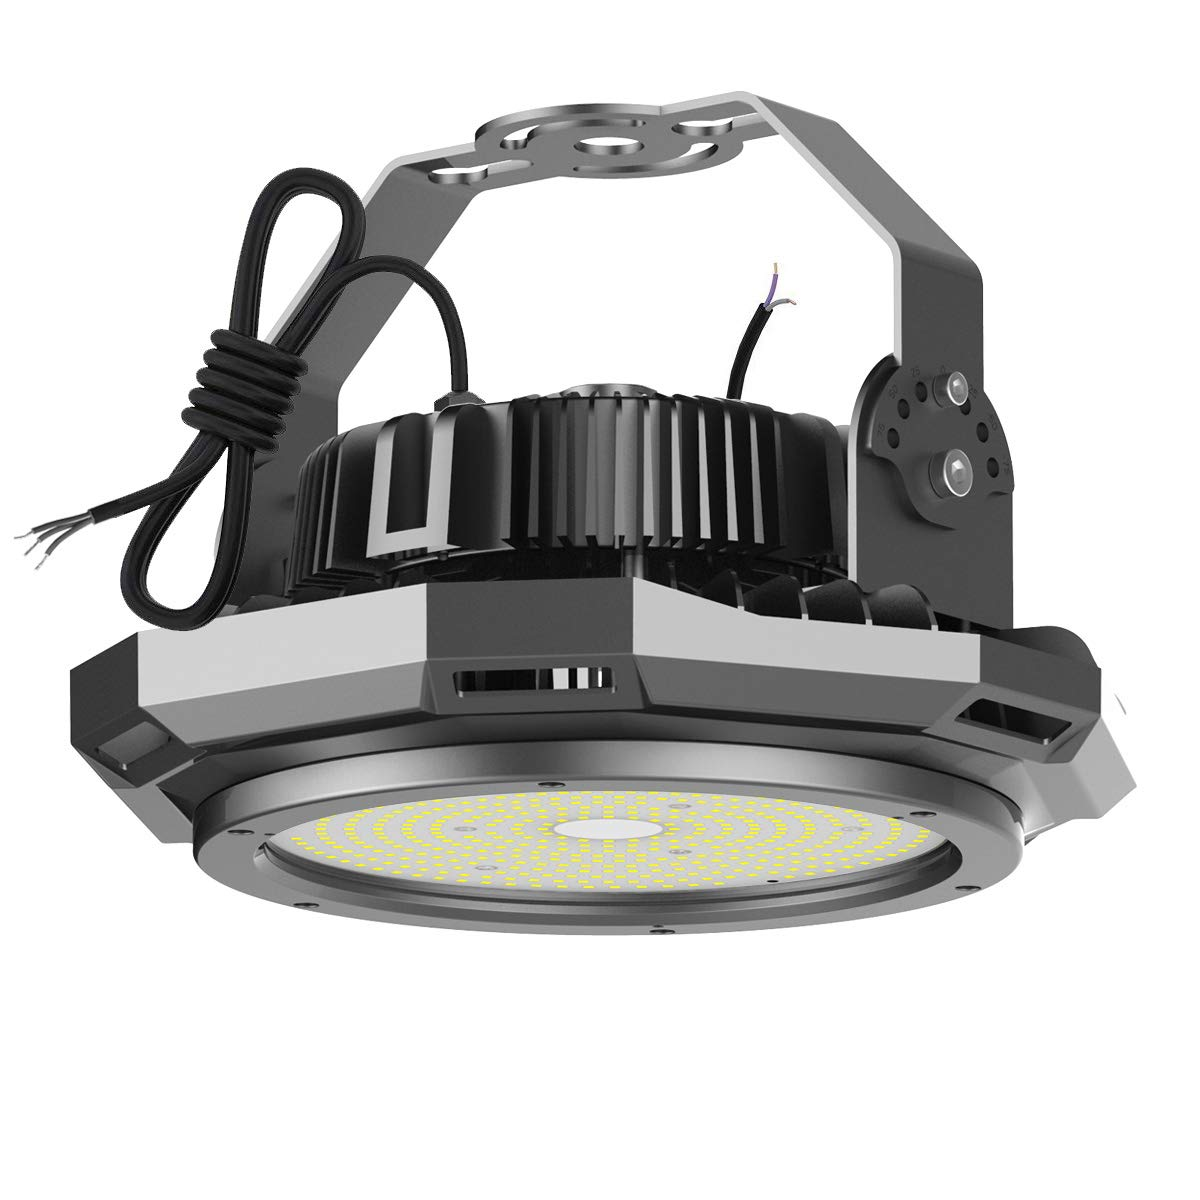 Great High Bay LED lights